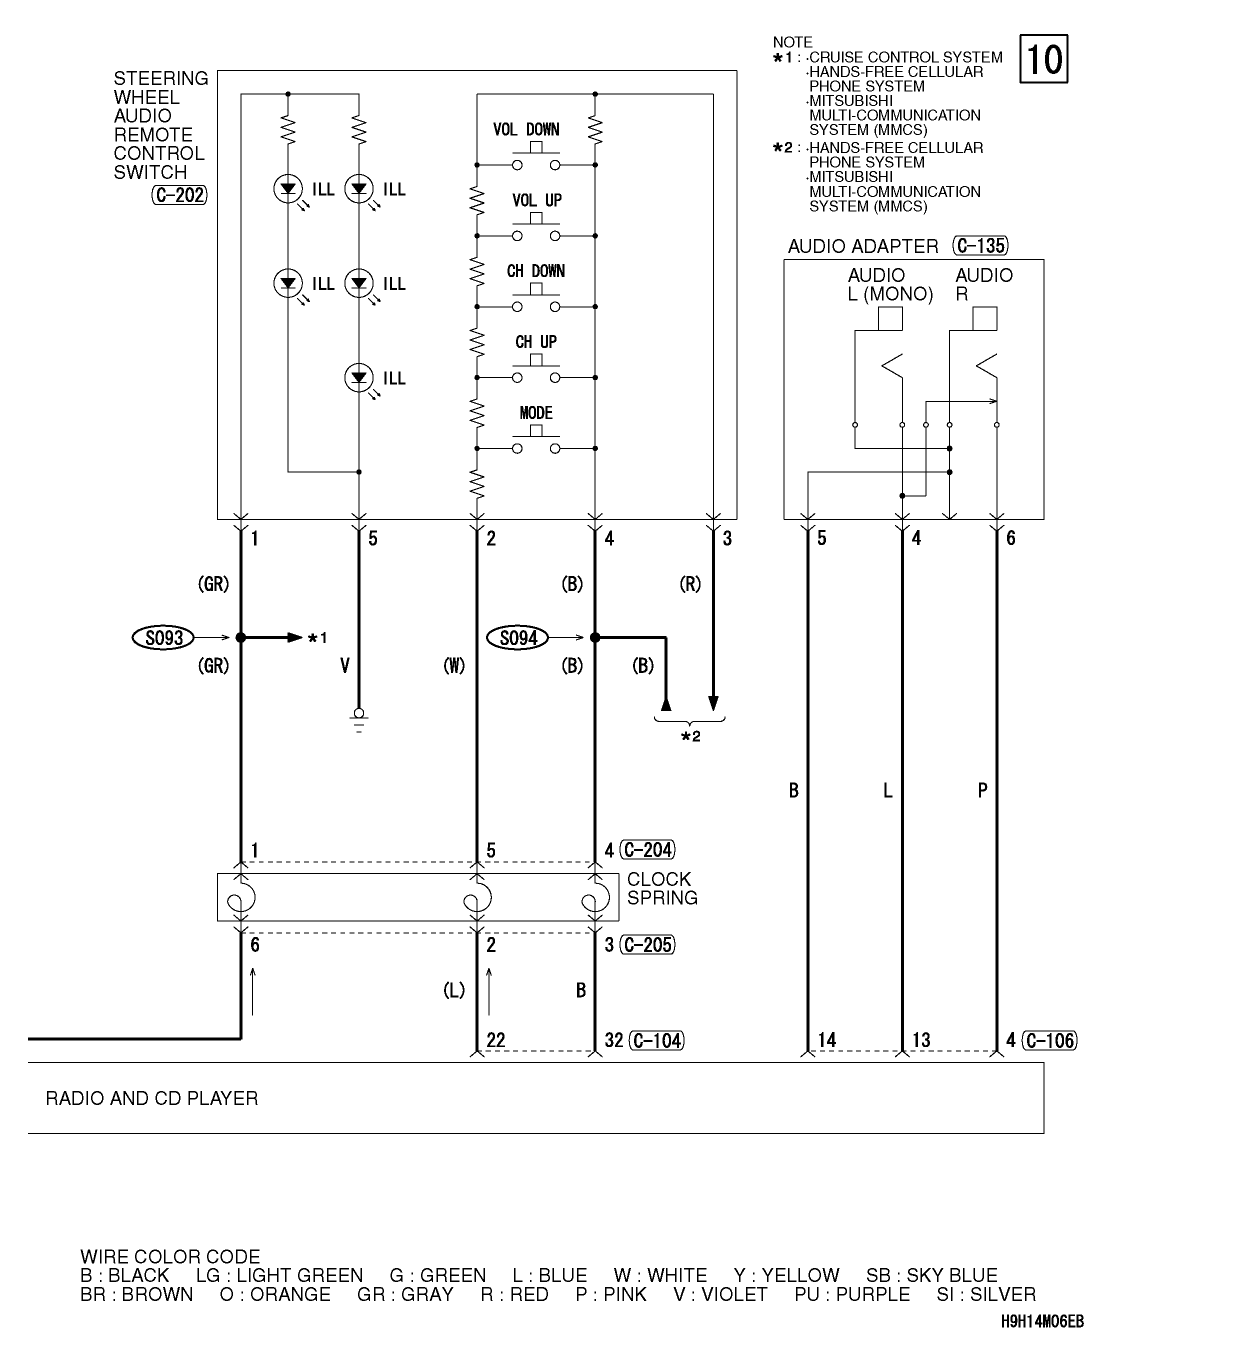 Lancer gts stereo wiring diagram